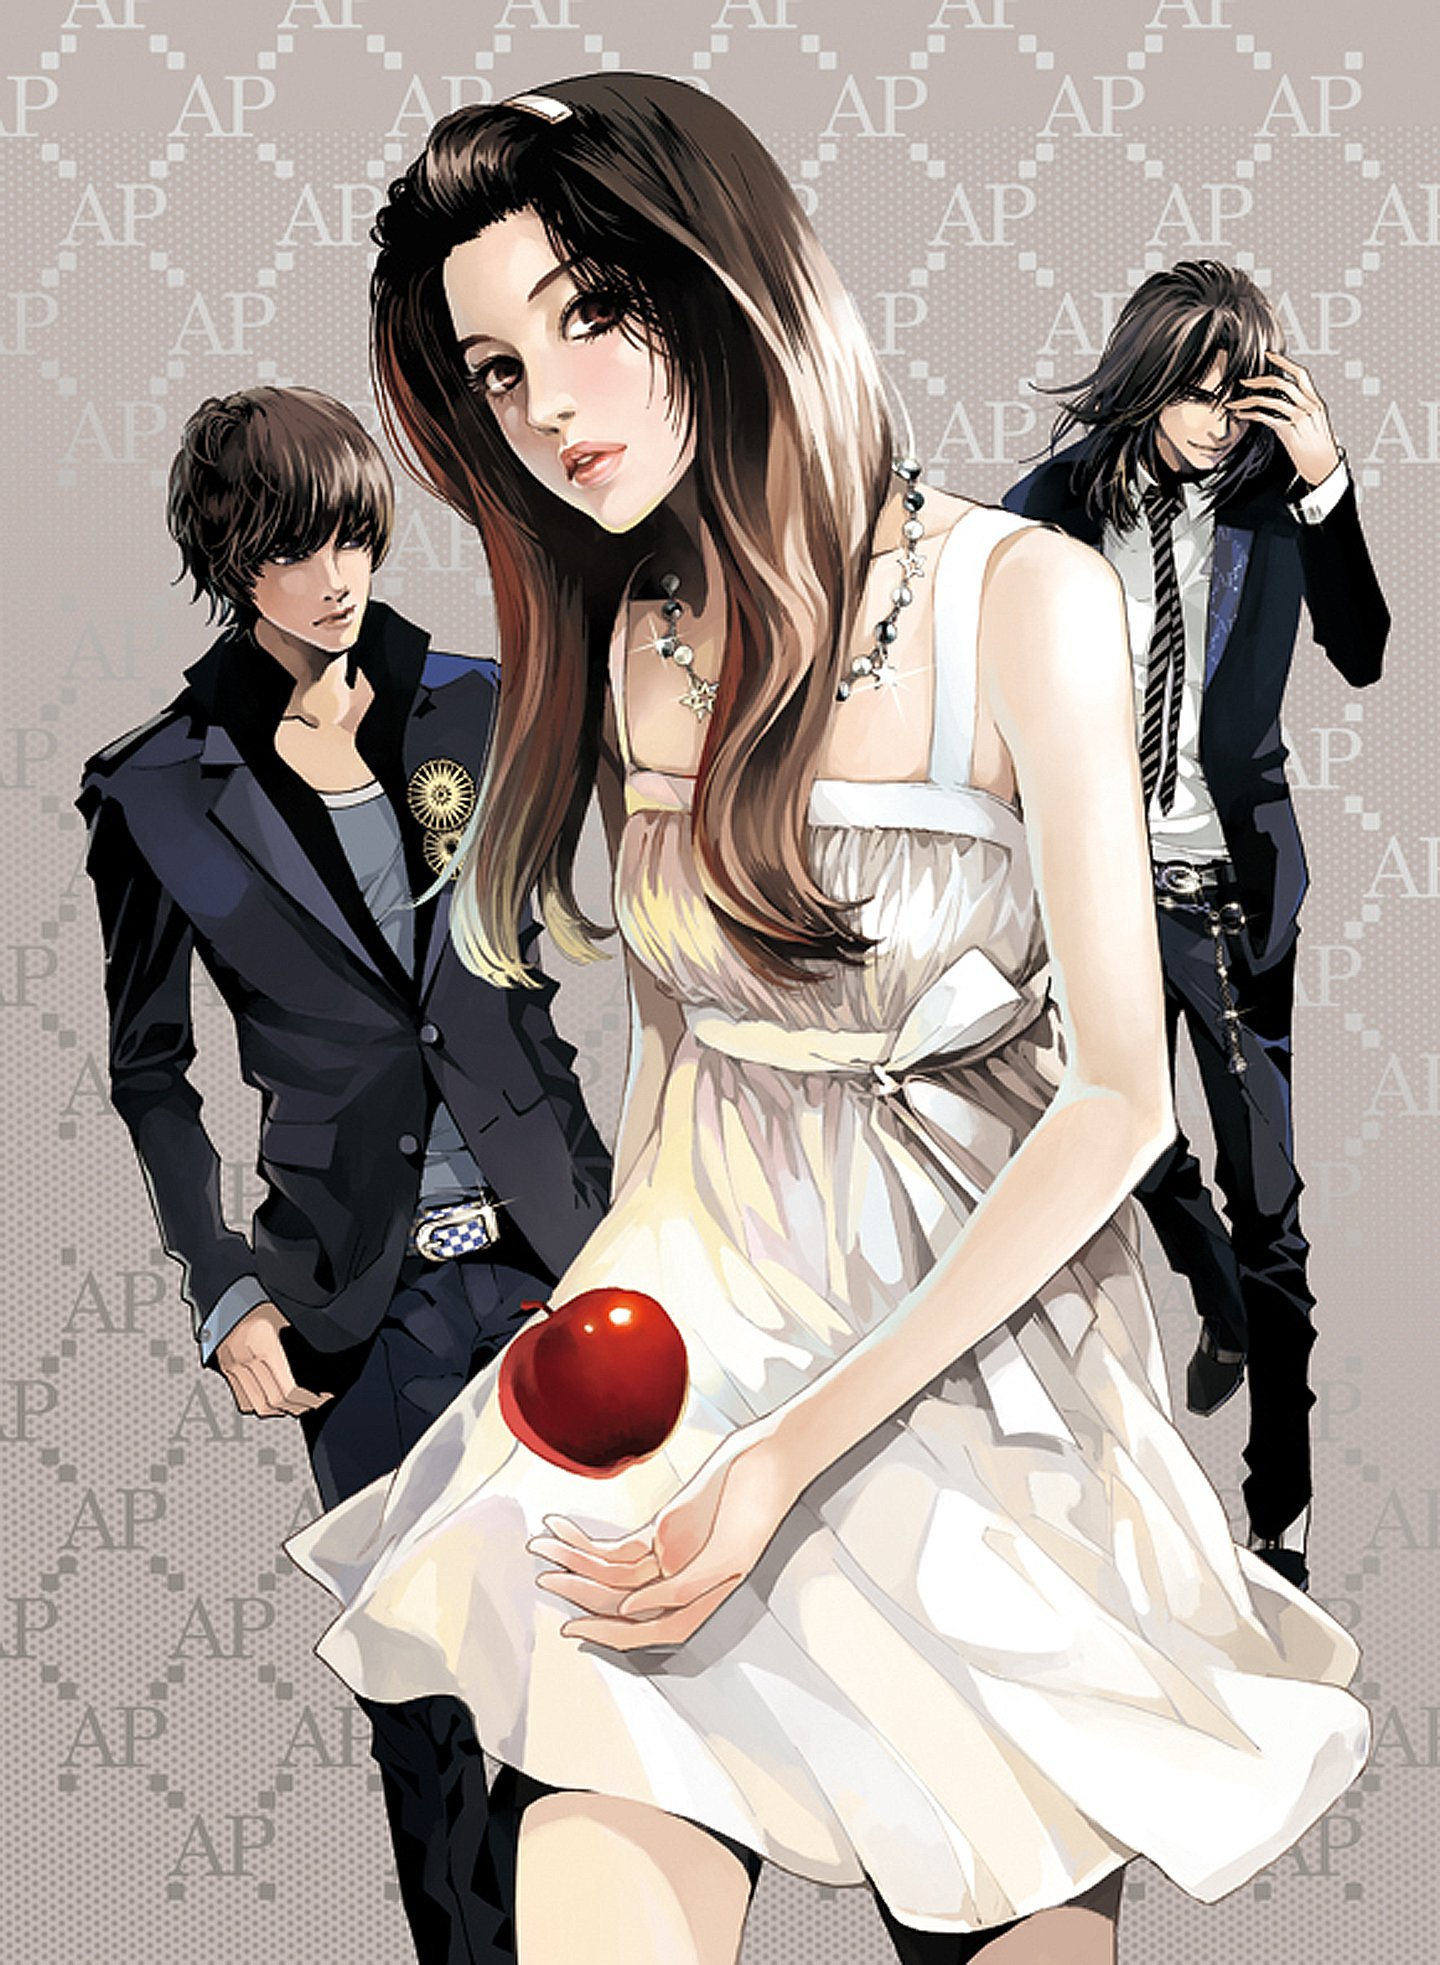 Apple Red Beautiful Girl Boys Black Suit Dress Couples Pretty Anime Wallpaper 1440x1965 478660 Wallpaperup